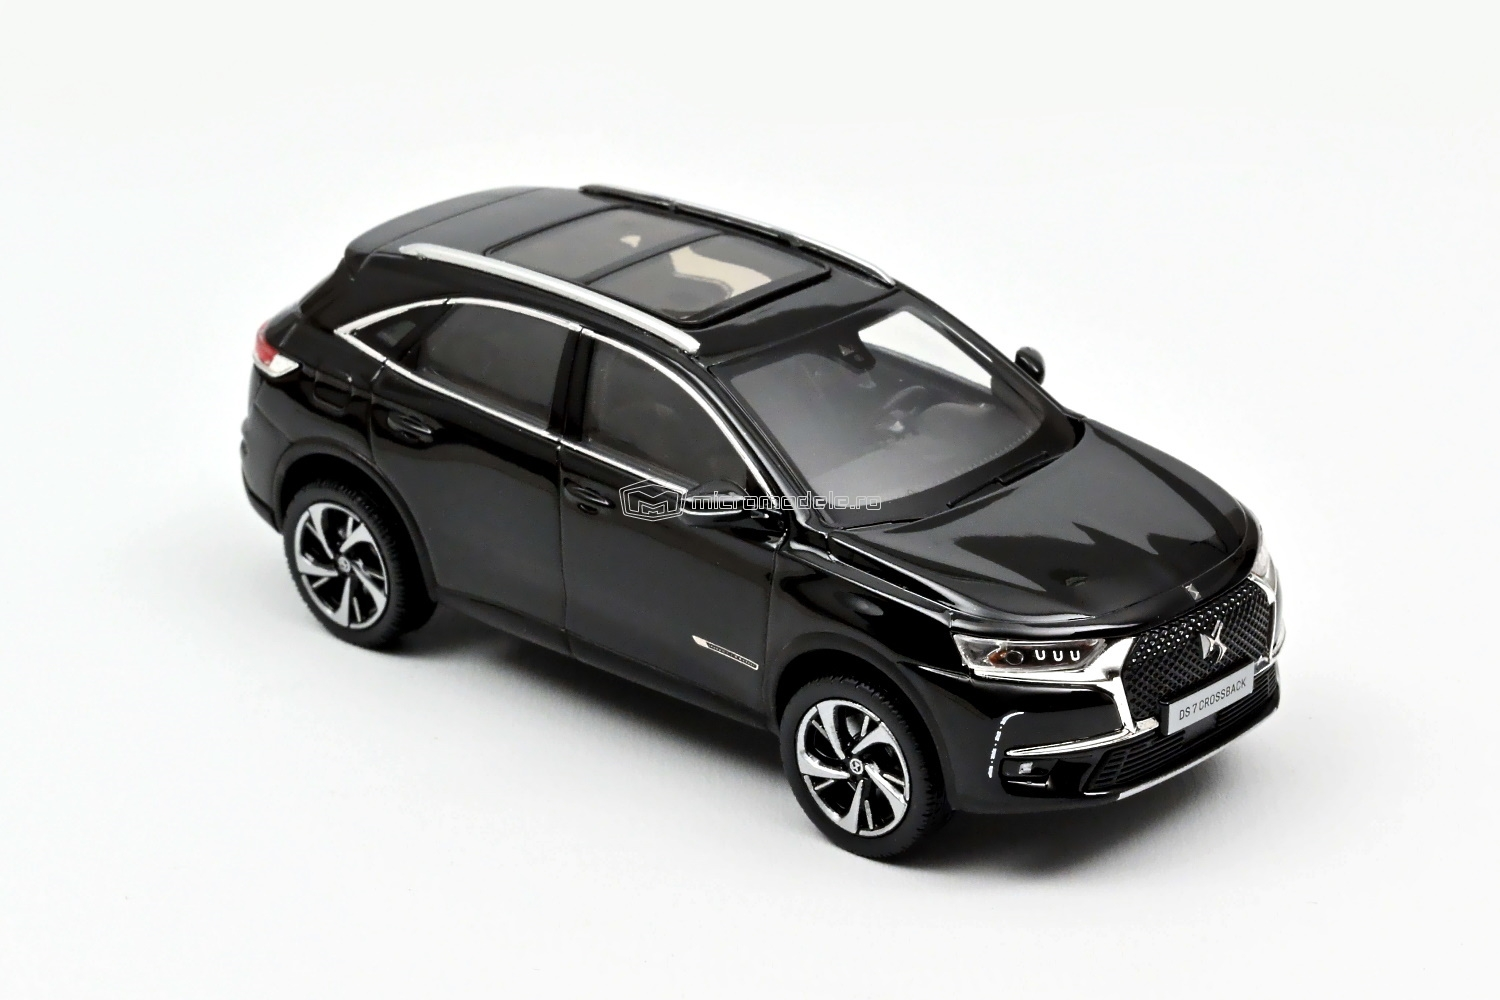 DS 7 (Citroen) Crossback (2017)